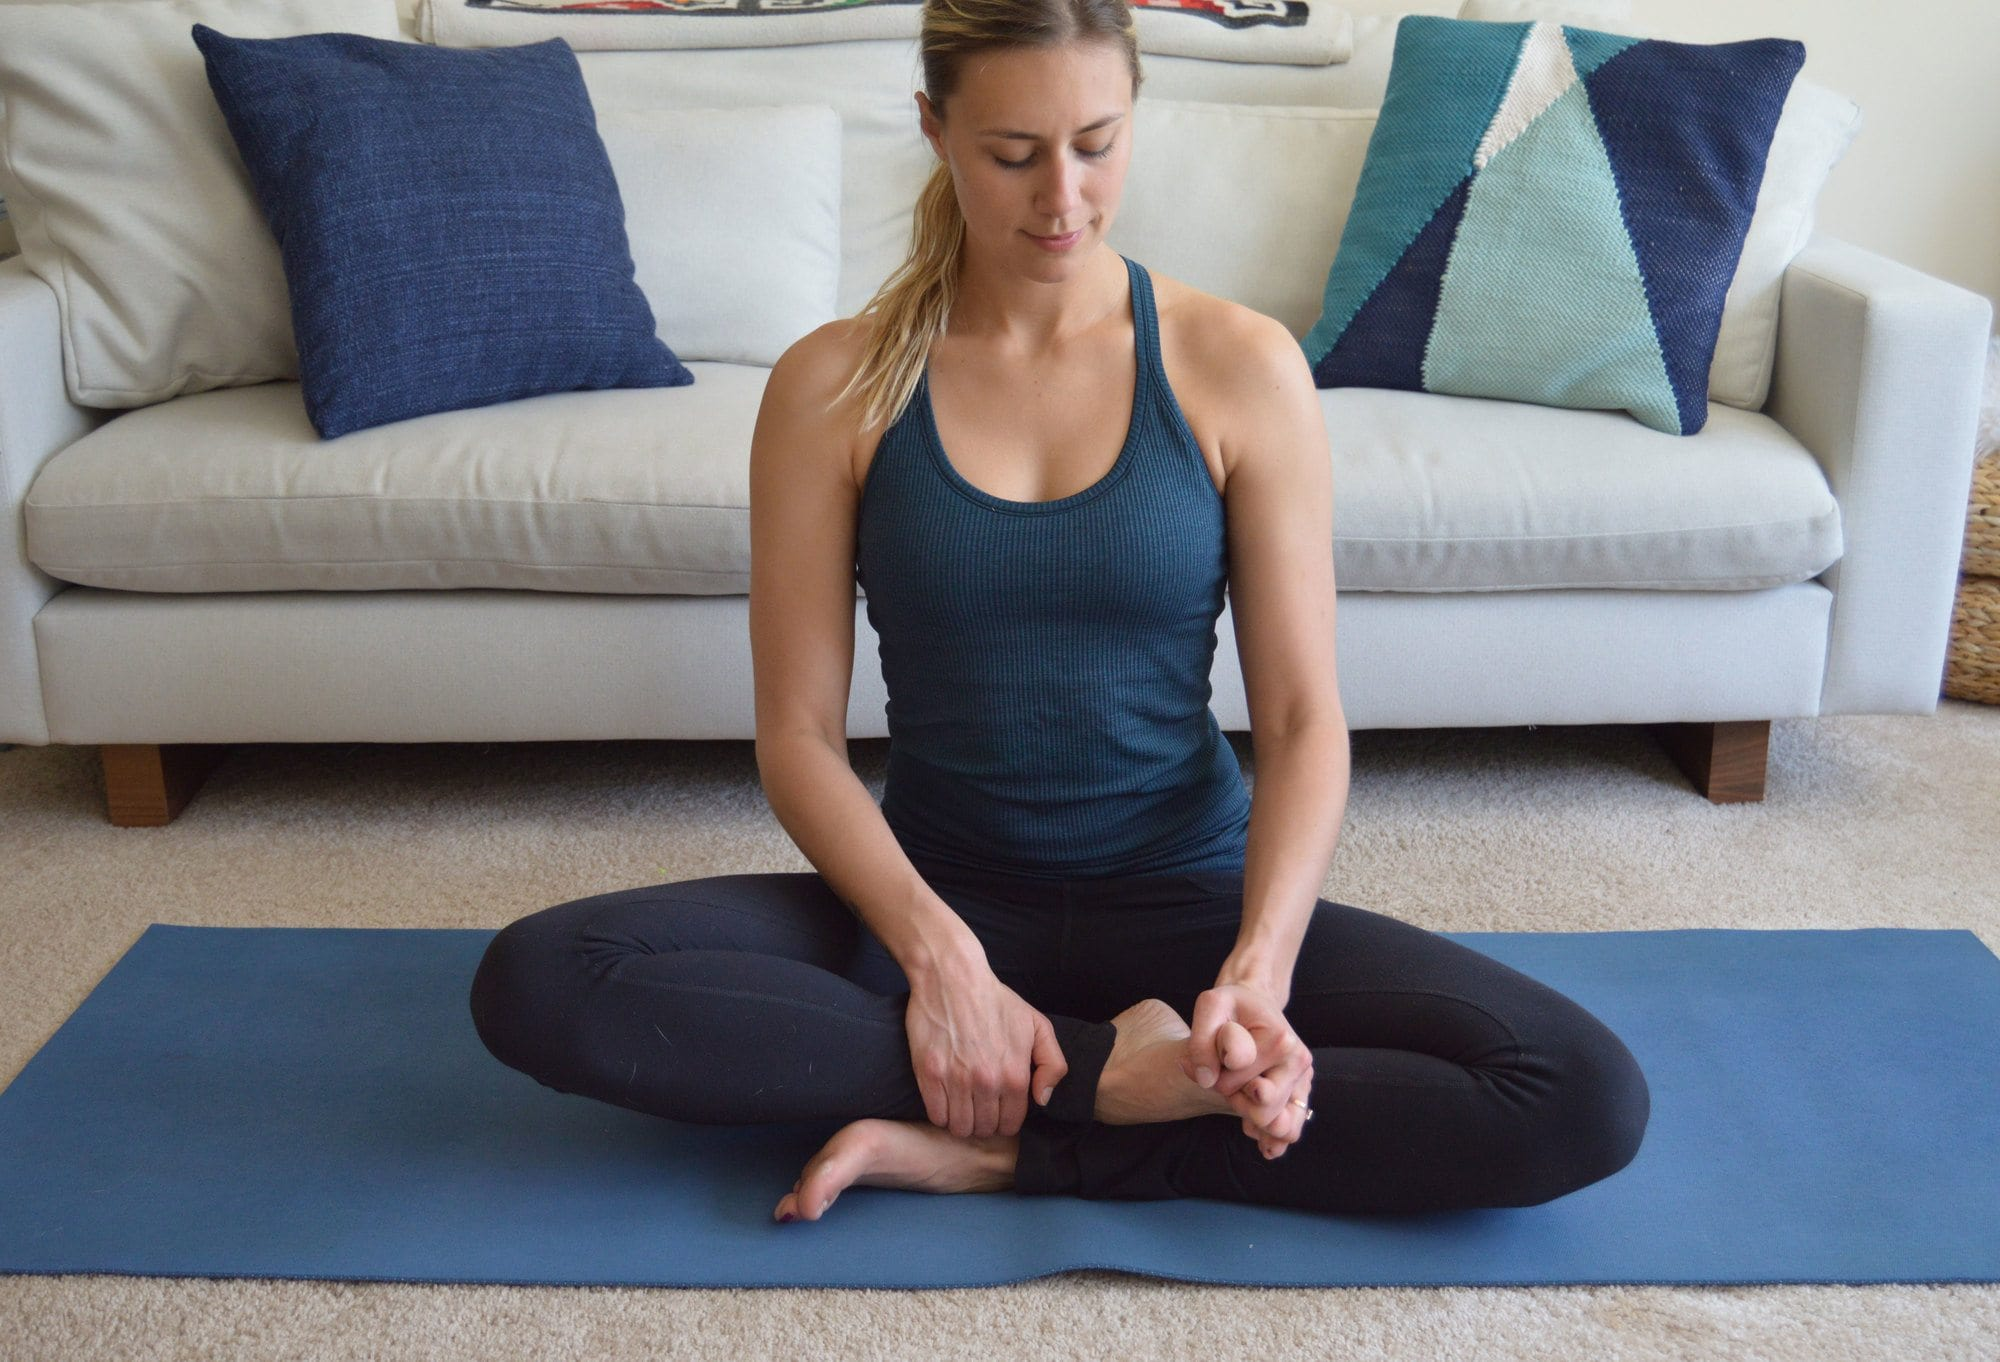 Do these yoga poses for hikers to keep your body safe, injury and pain-free while hiking or backpacking. Doing simple yoga stretches and yoga poses can relieve tension and soreness from your feet, knees and low back and shoulders while you're on the trail.